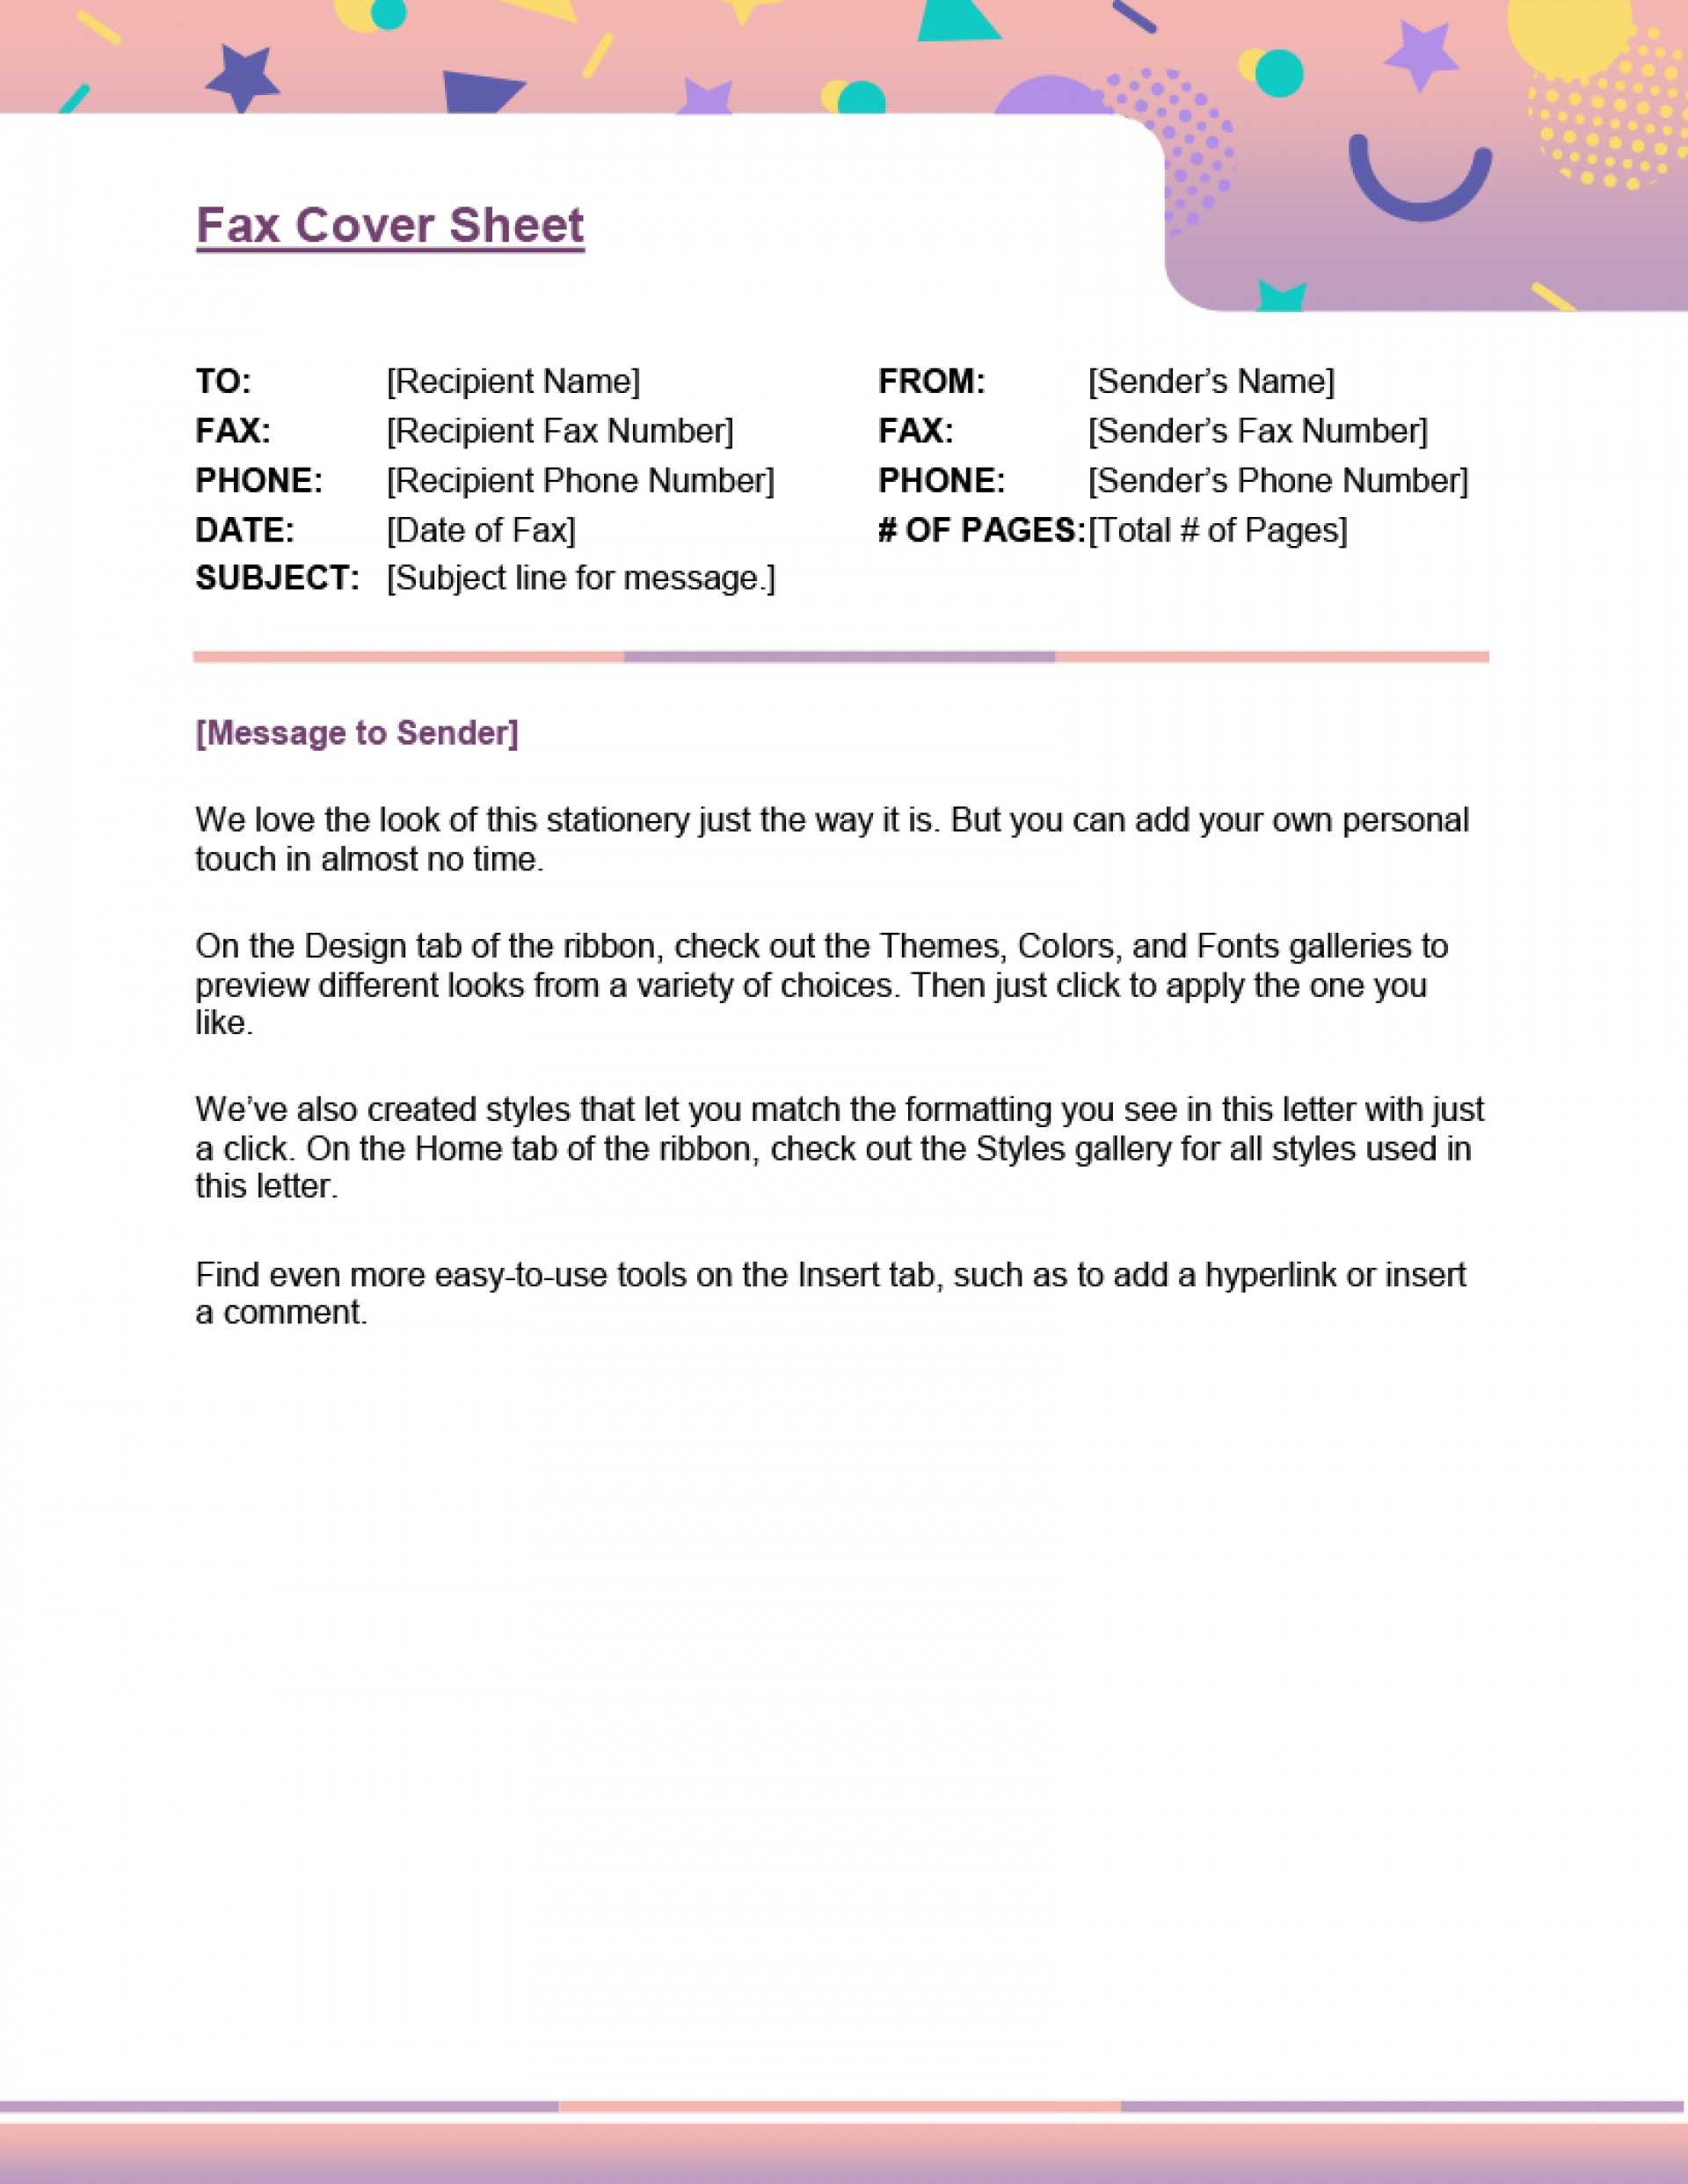 024 Fax Cover Sheet Template Ord Printable Document Ver With Regard To Personal Check Template Word 2003